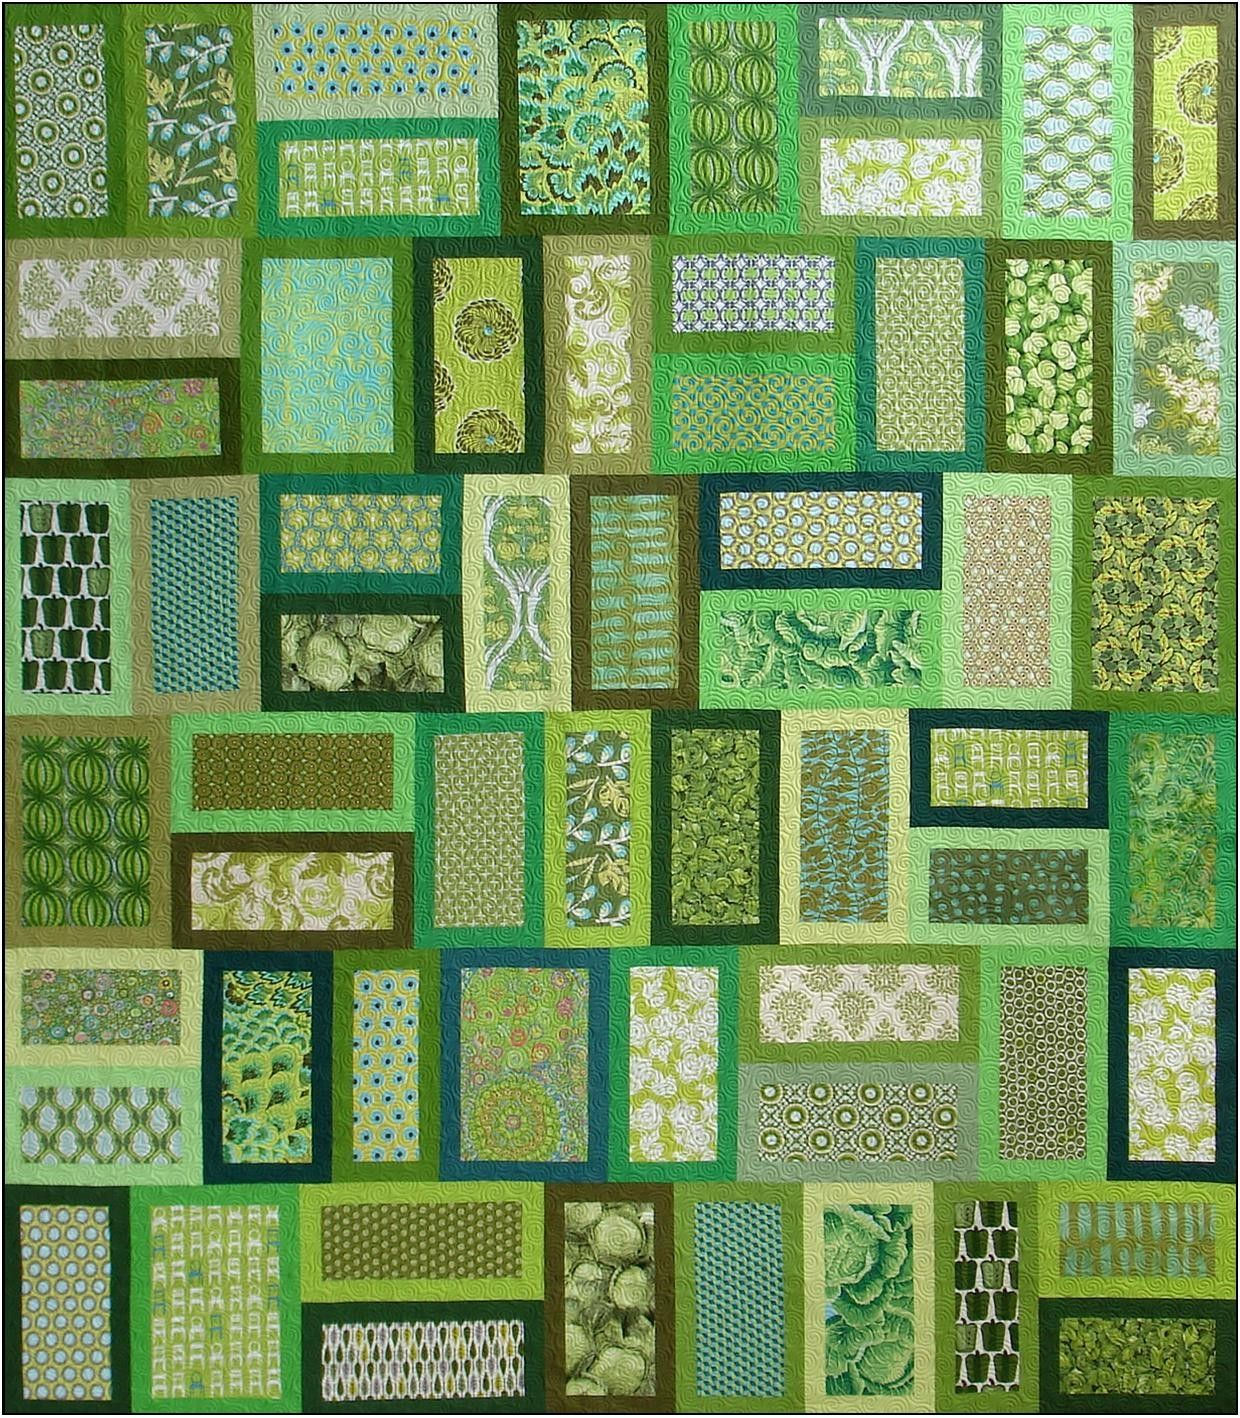 tuazon melanie green the quilt peek